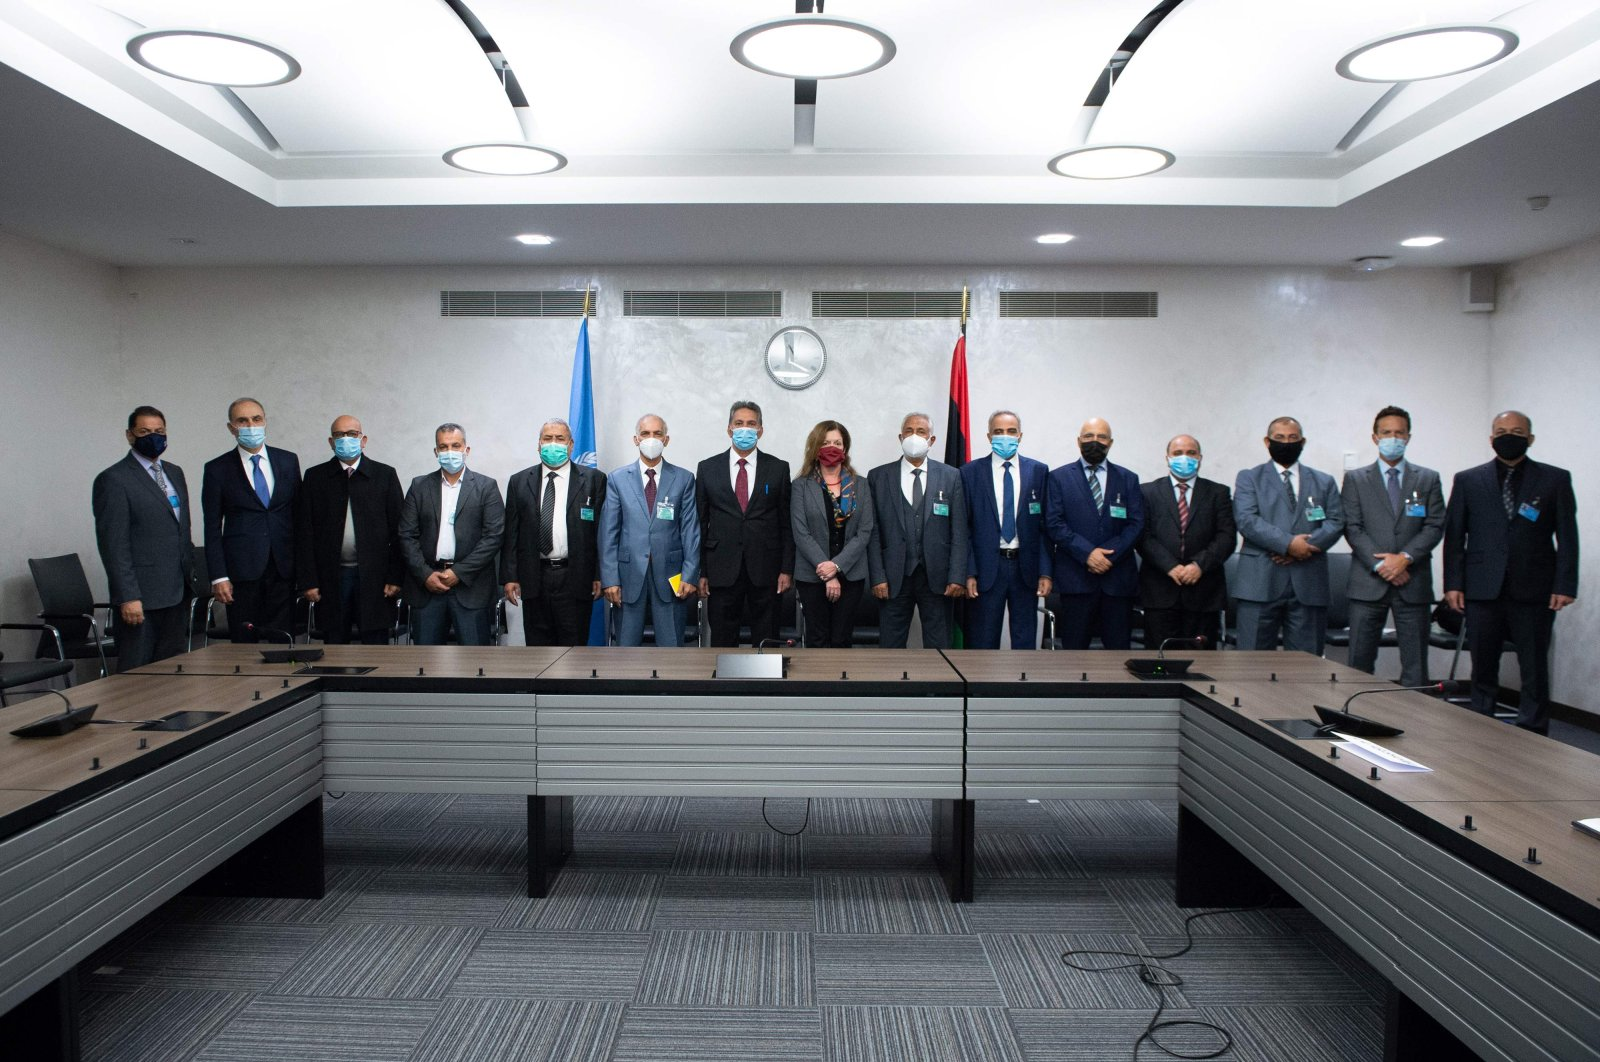 Deputy special representative of the U.N. Secretary-General for Political Affairs in Libya Stephanie Williams (8th R) and representatives of the rival factions in the Libya conflict, standing at the beginning of the talks in Geneva. (AFP File Photo)